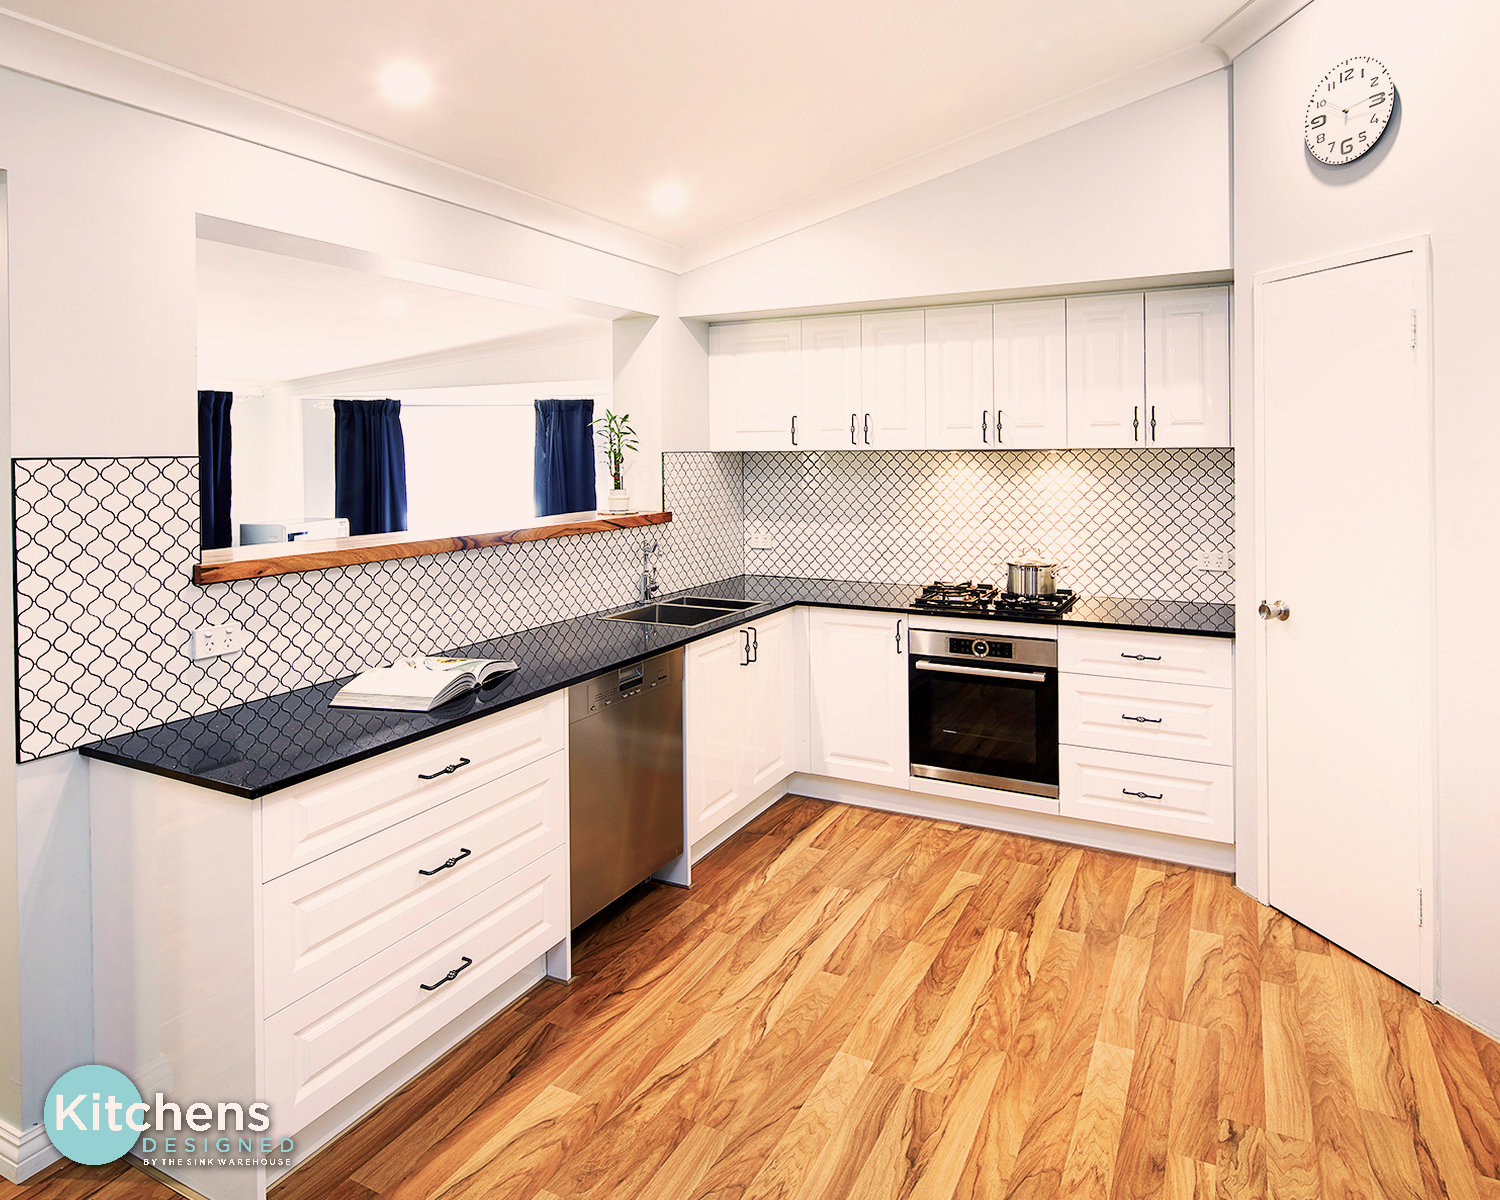 Kitchens Designed Completed Project